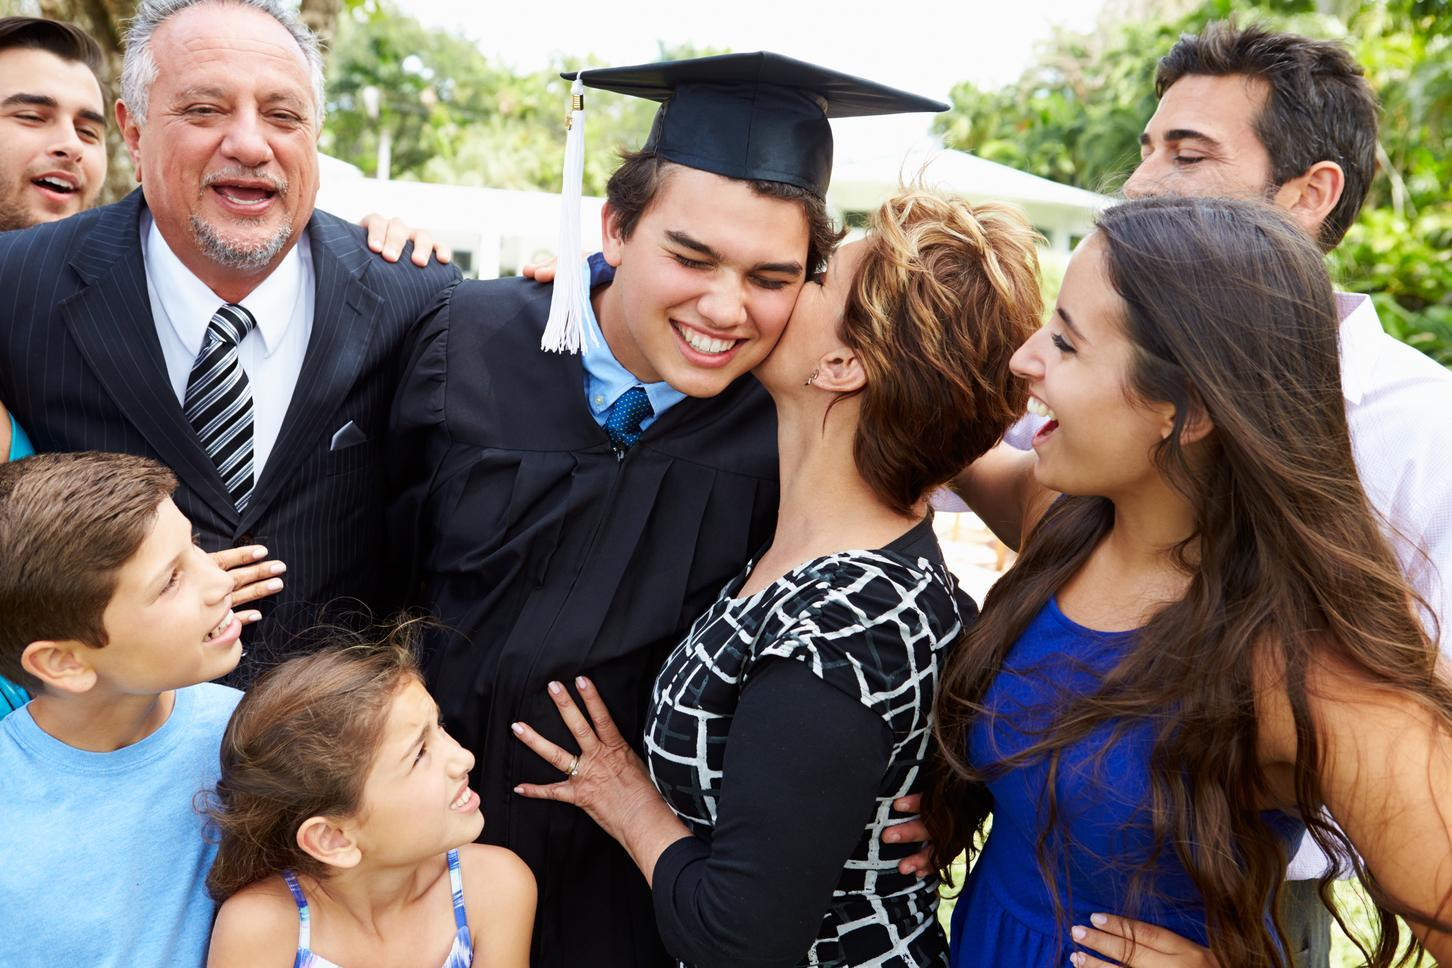 Student and his family celebrating graduation